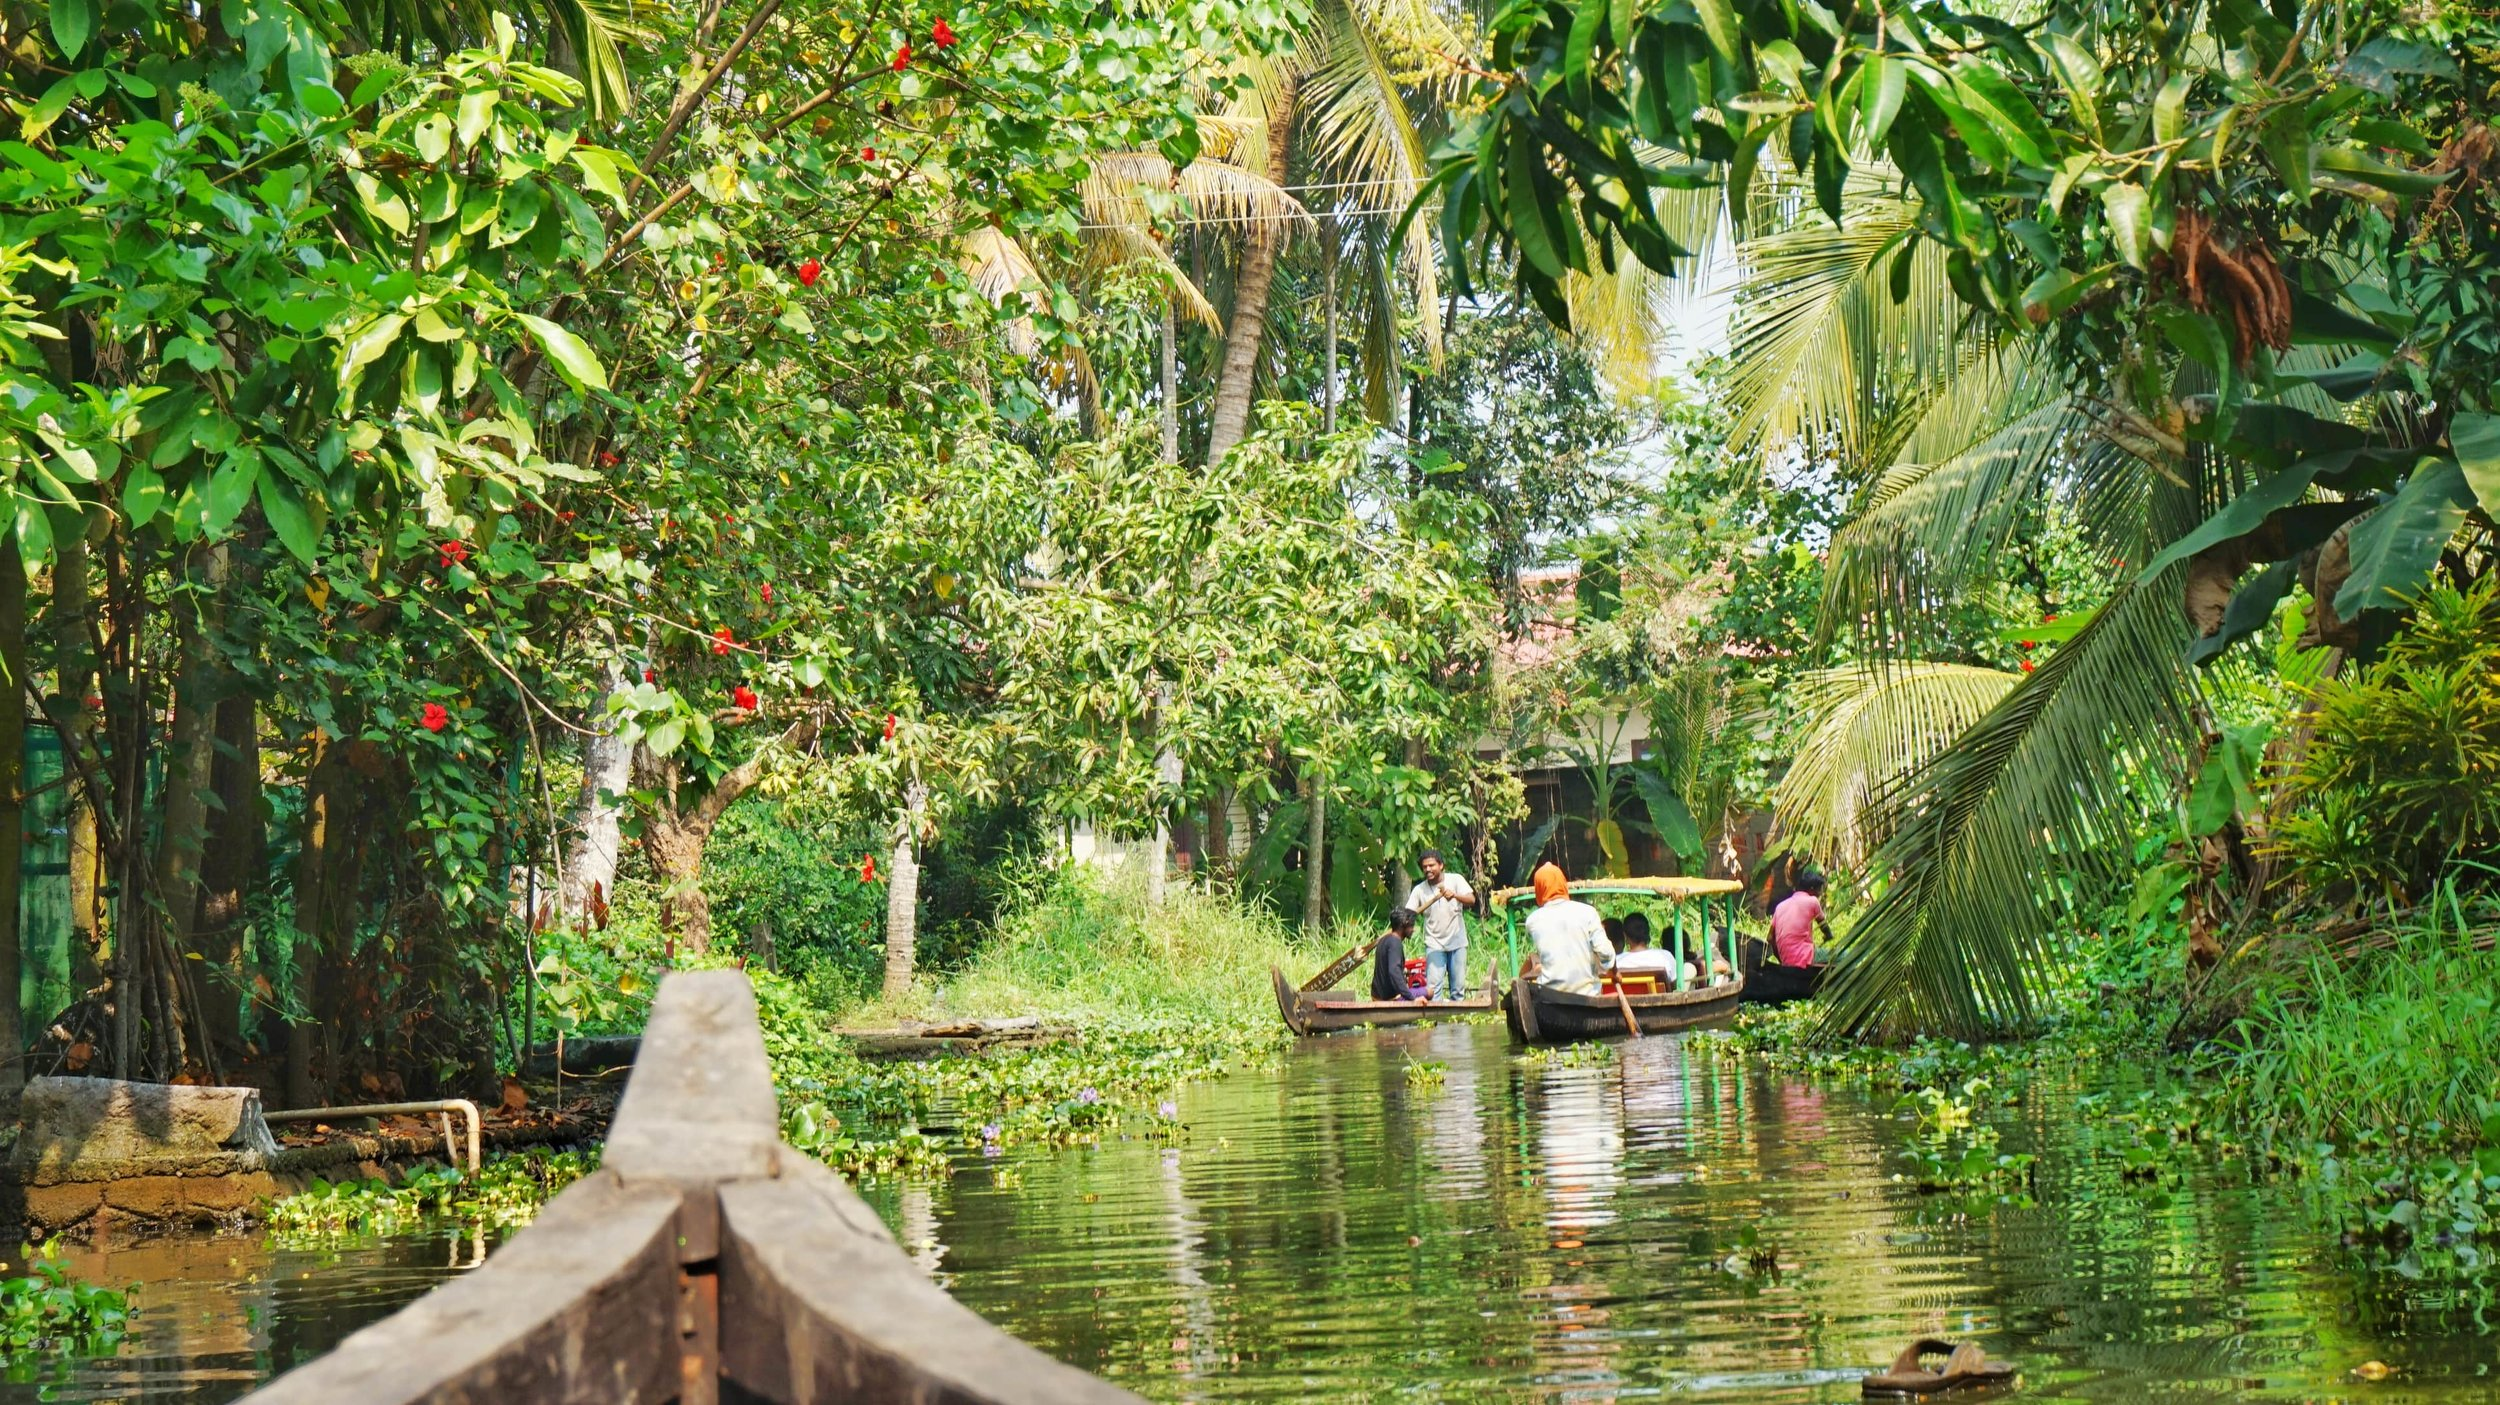 Lush greenery and small canals on the best Alleppey backwater tour by canoe. Backwaters of Kerala.